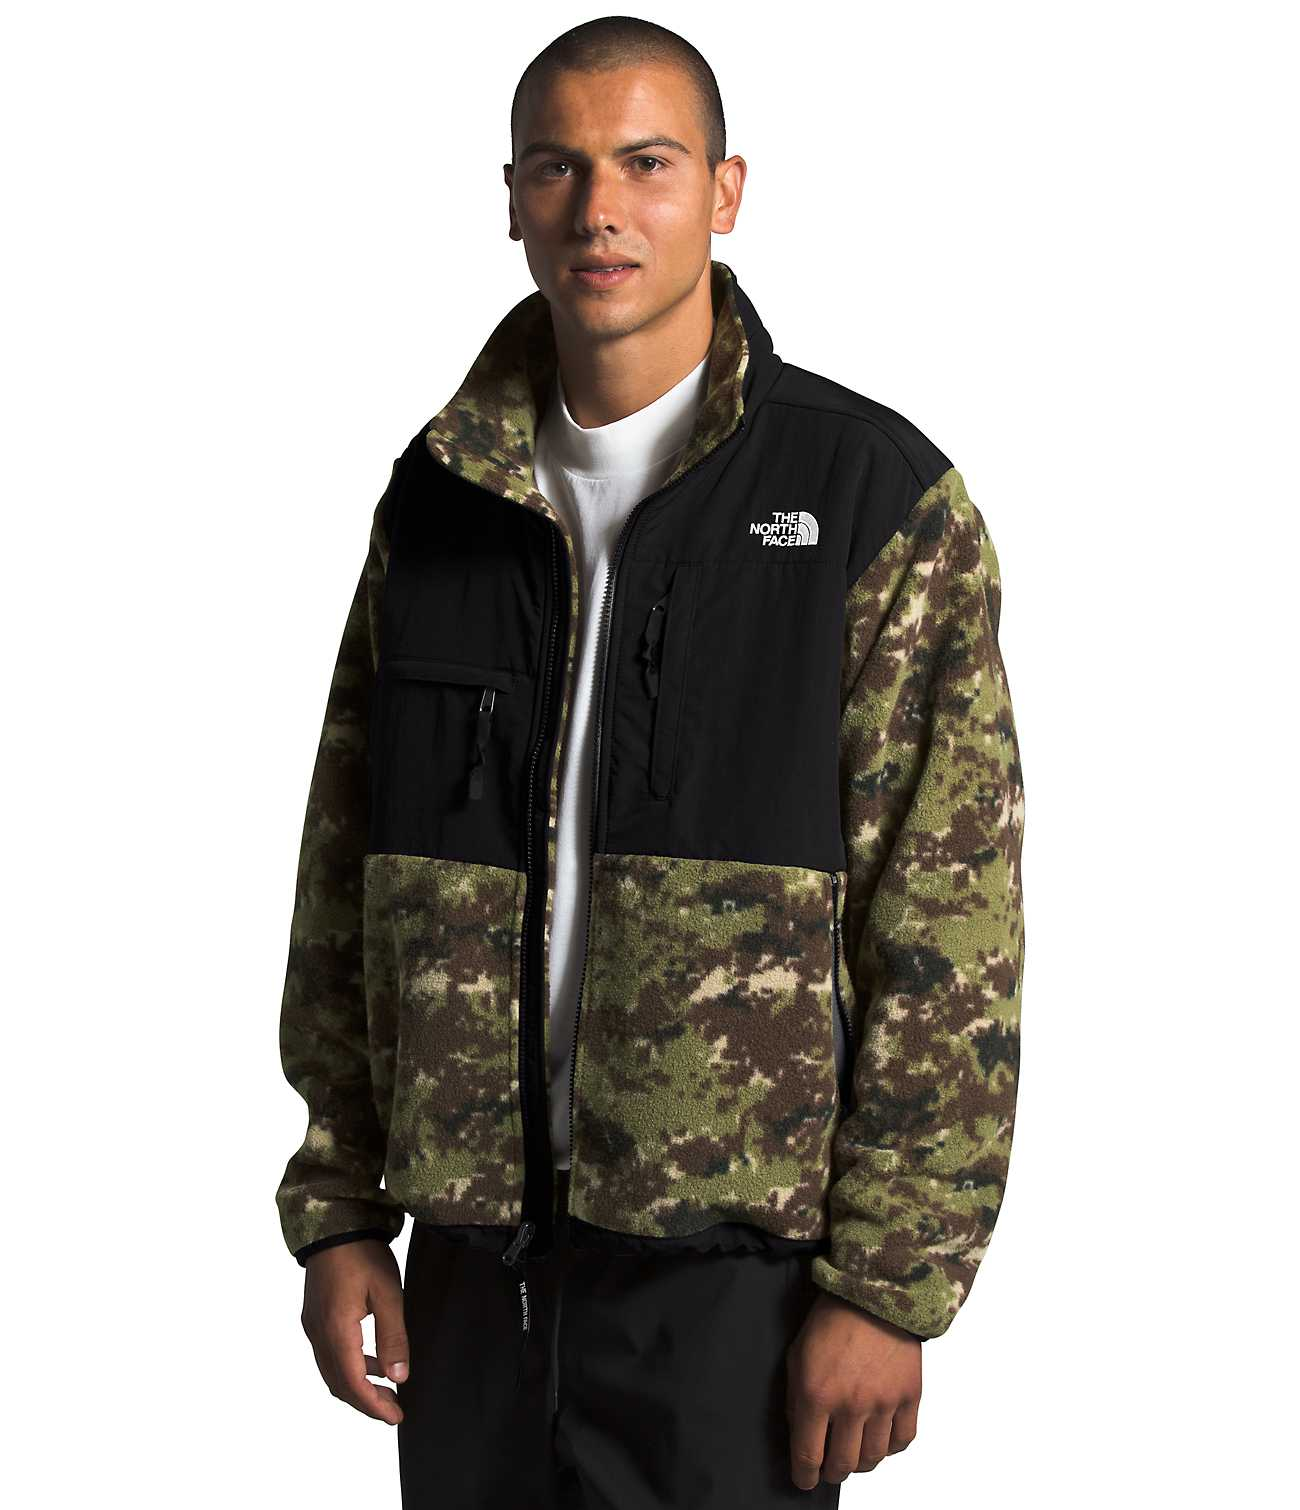 THE NORTH FACE M'S CASUAL JACKETS 1995 RETRO DENALI JACKET